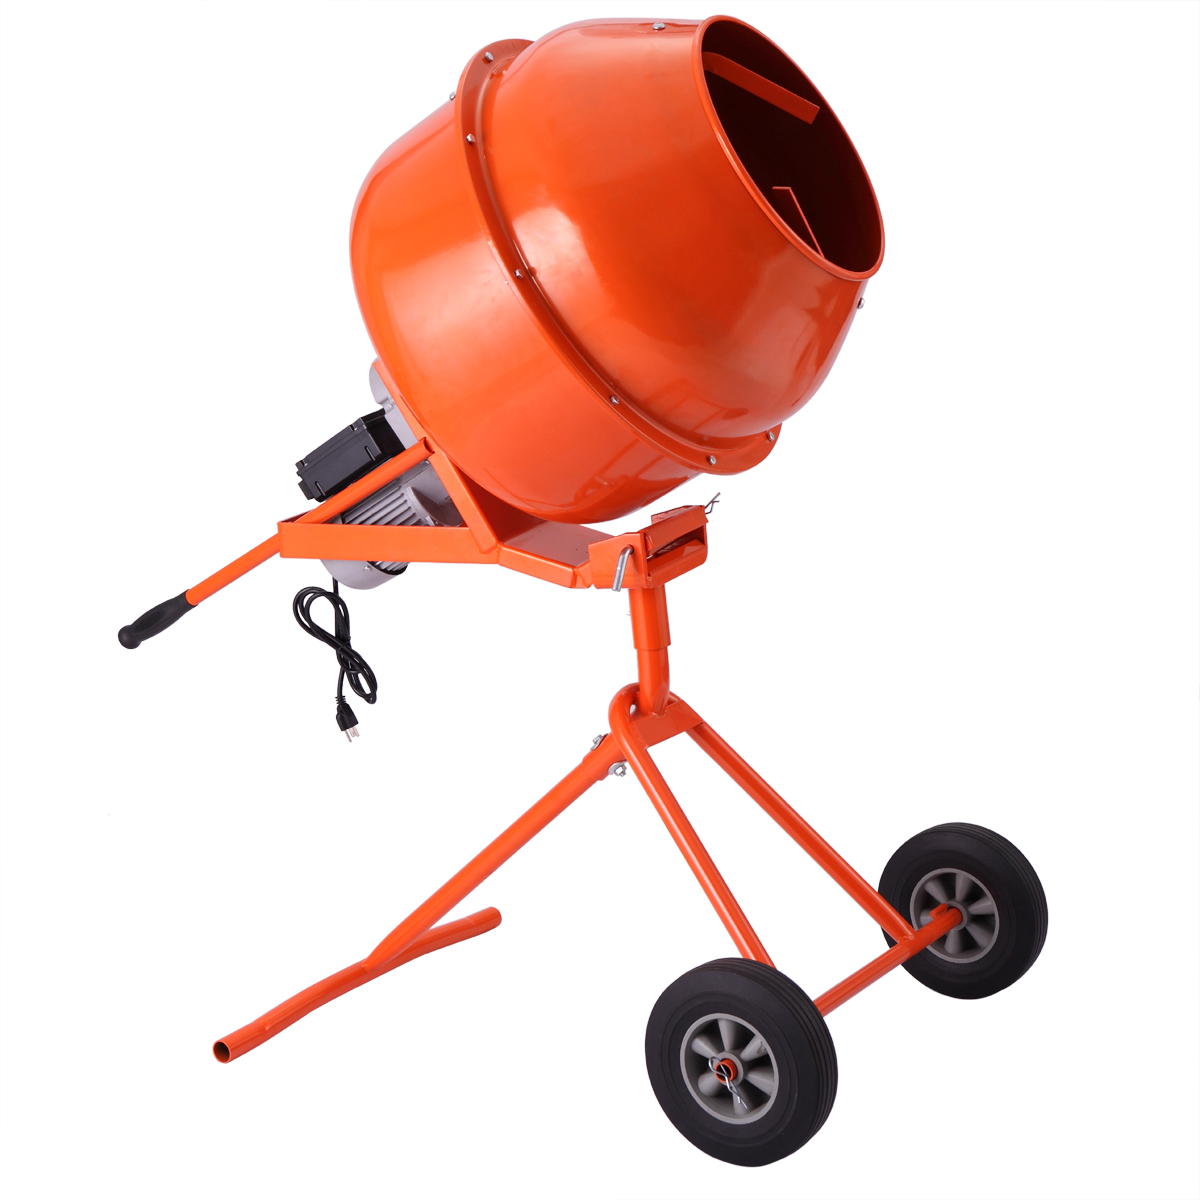 Lazymoon Portable 5Cuft 1 2HP Electric Concrete Cement Mixer Barrow Machine Mixing Mortar by Lazymoon